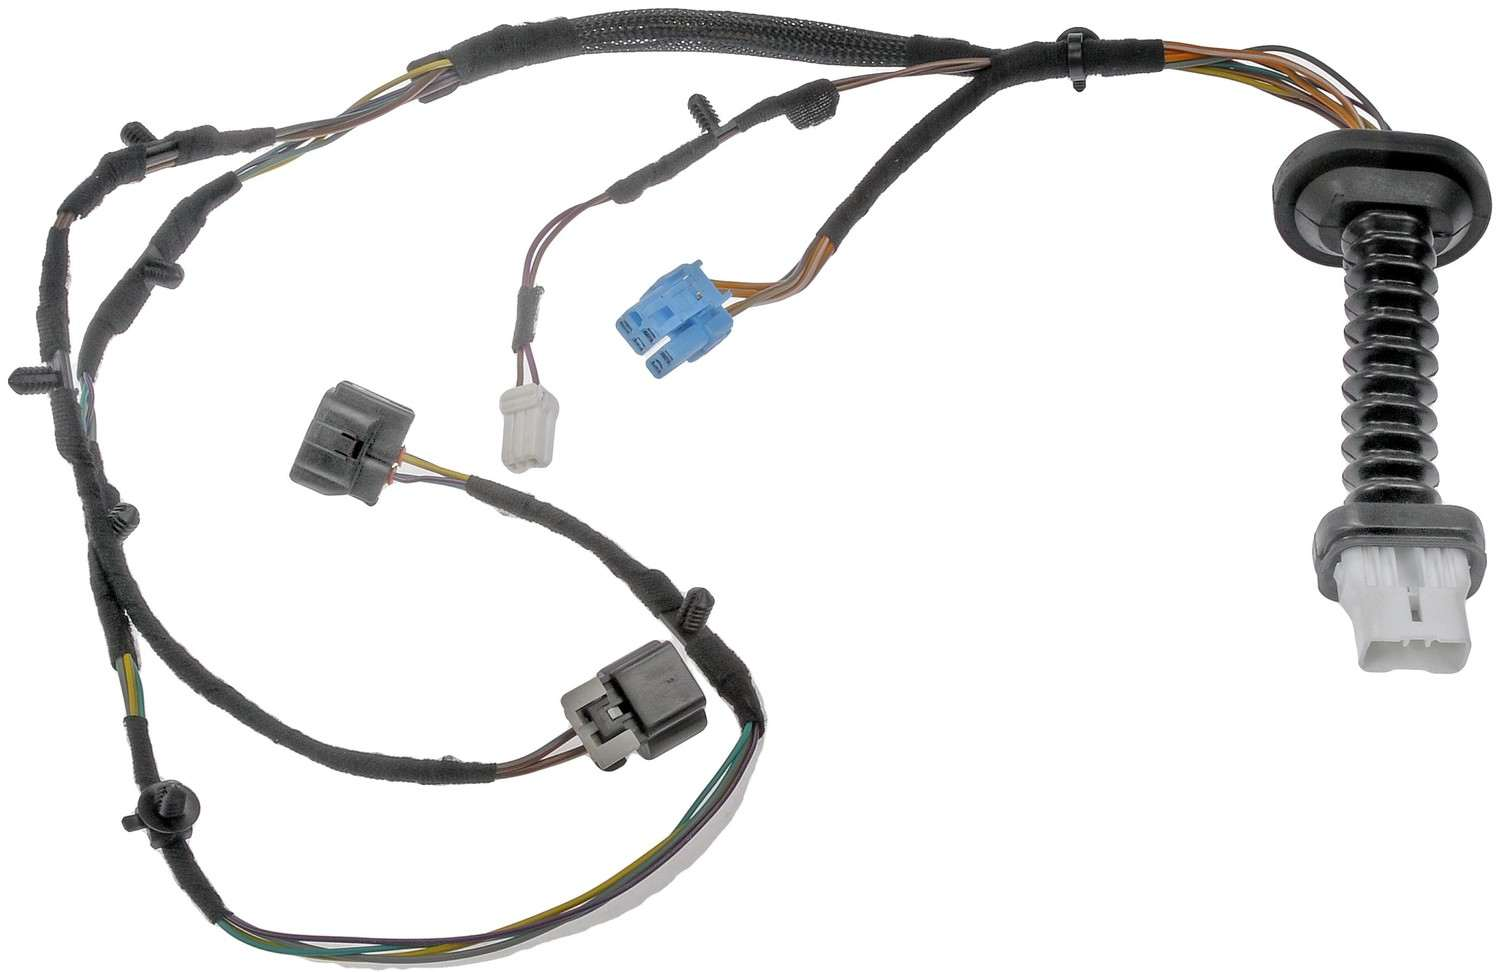 Door Wiring Harness Dorman 645 506 Fits 04 05 Dodge Ram